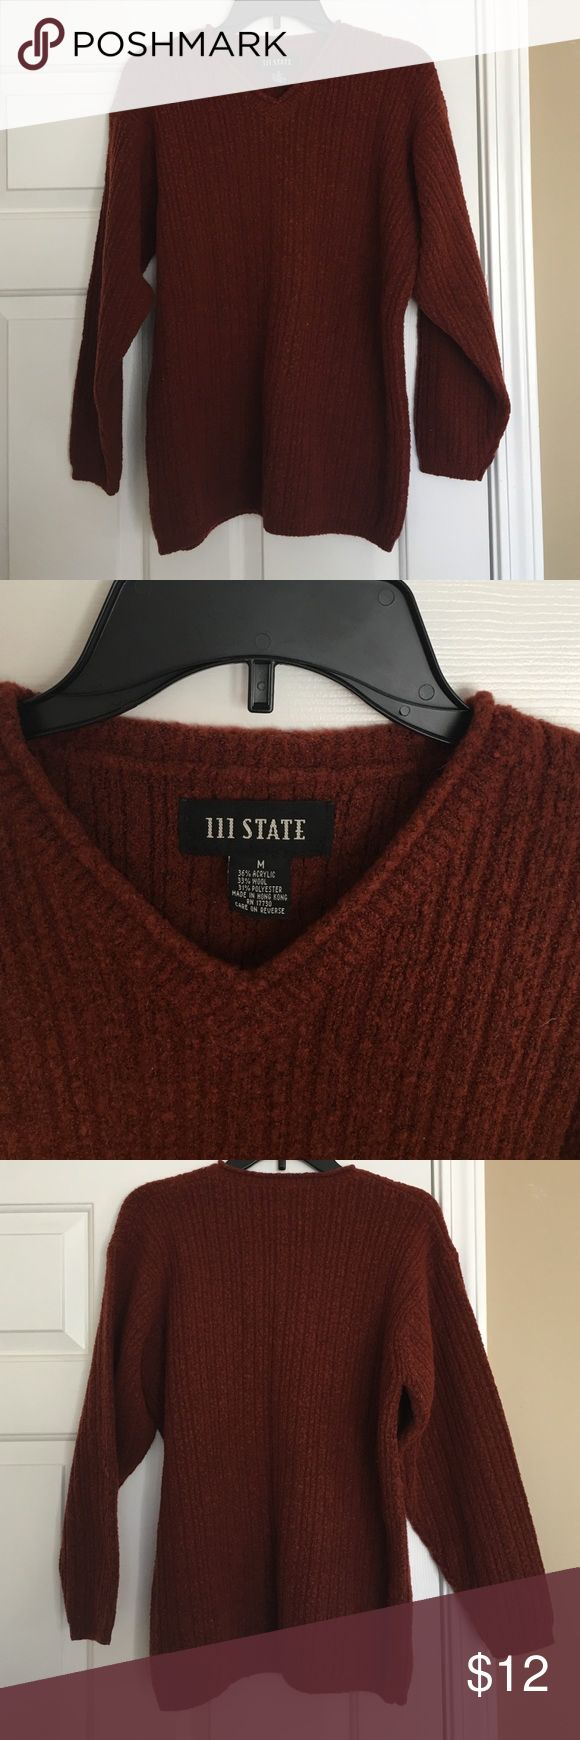 Big comfy fall sweater Vintage sweater! Burnt orange/burgundy color. Thick enough to keep you warm & perfect for fall! 111 State Sweaters